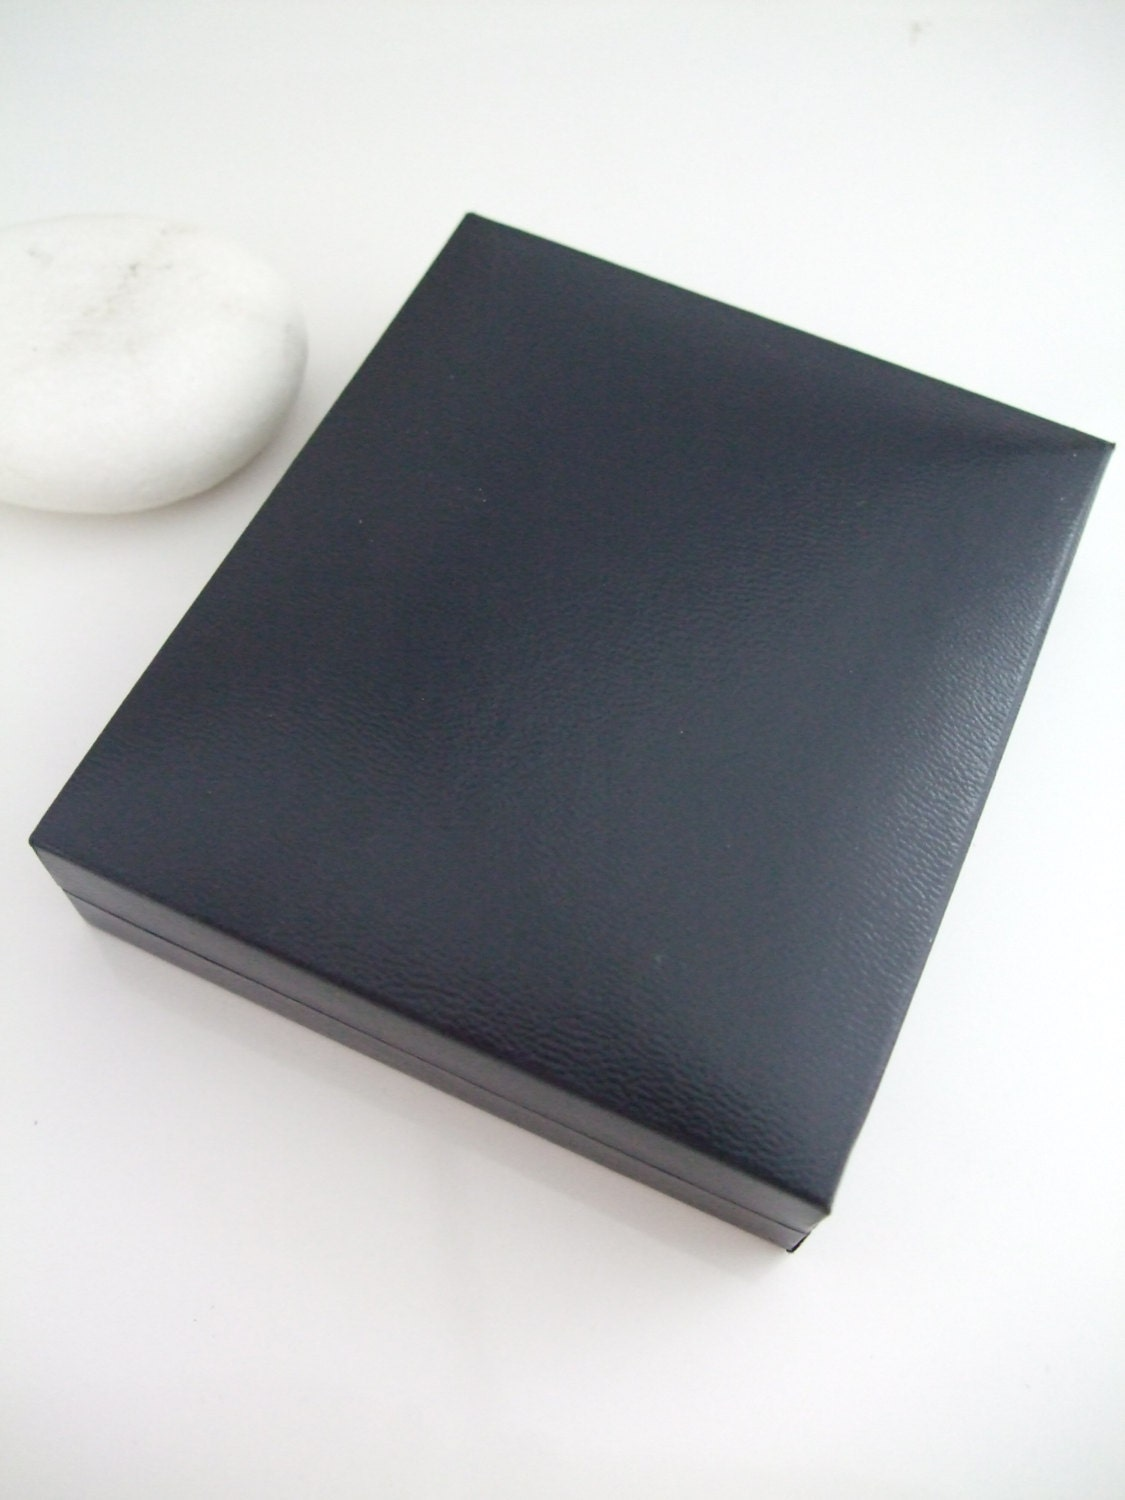 Luxury Dark Blue Jewellery Gift Box For Earrings Or Small Pendant Leatherette Jewelry Gift Box Boxes Uk Seller Exgb 002